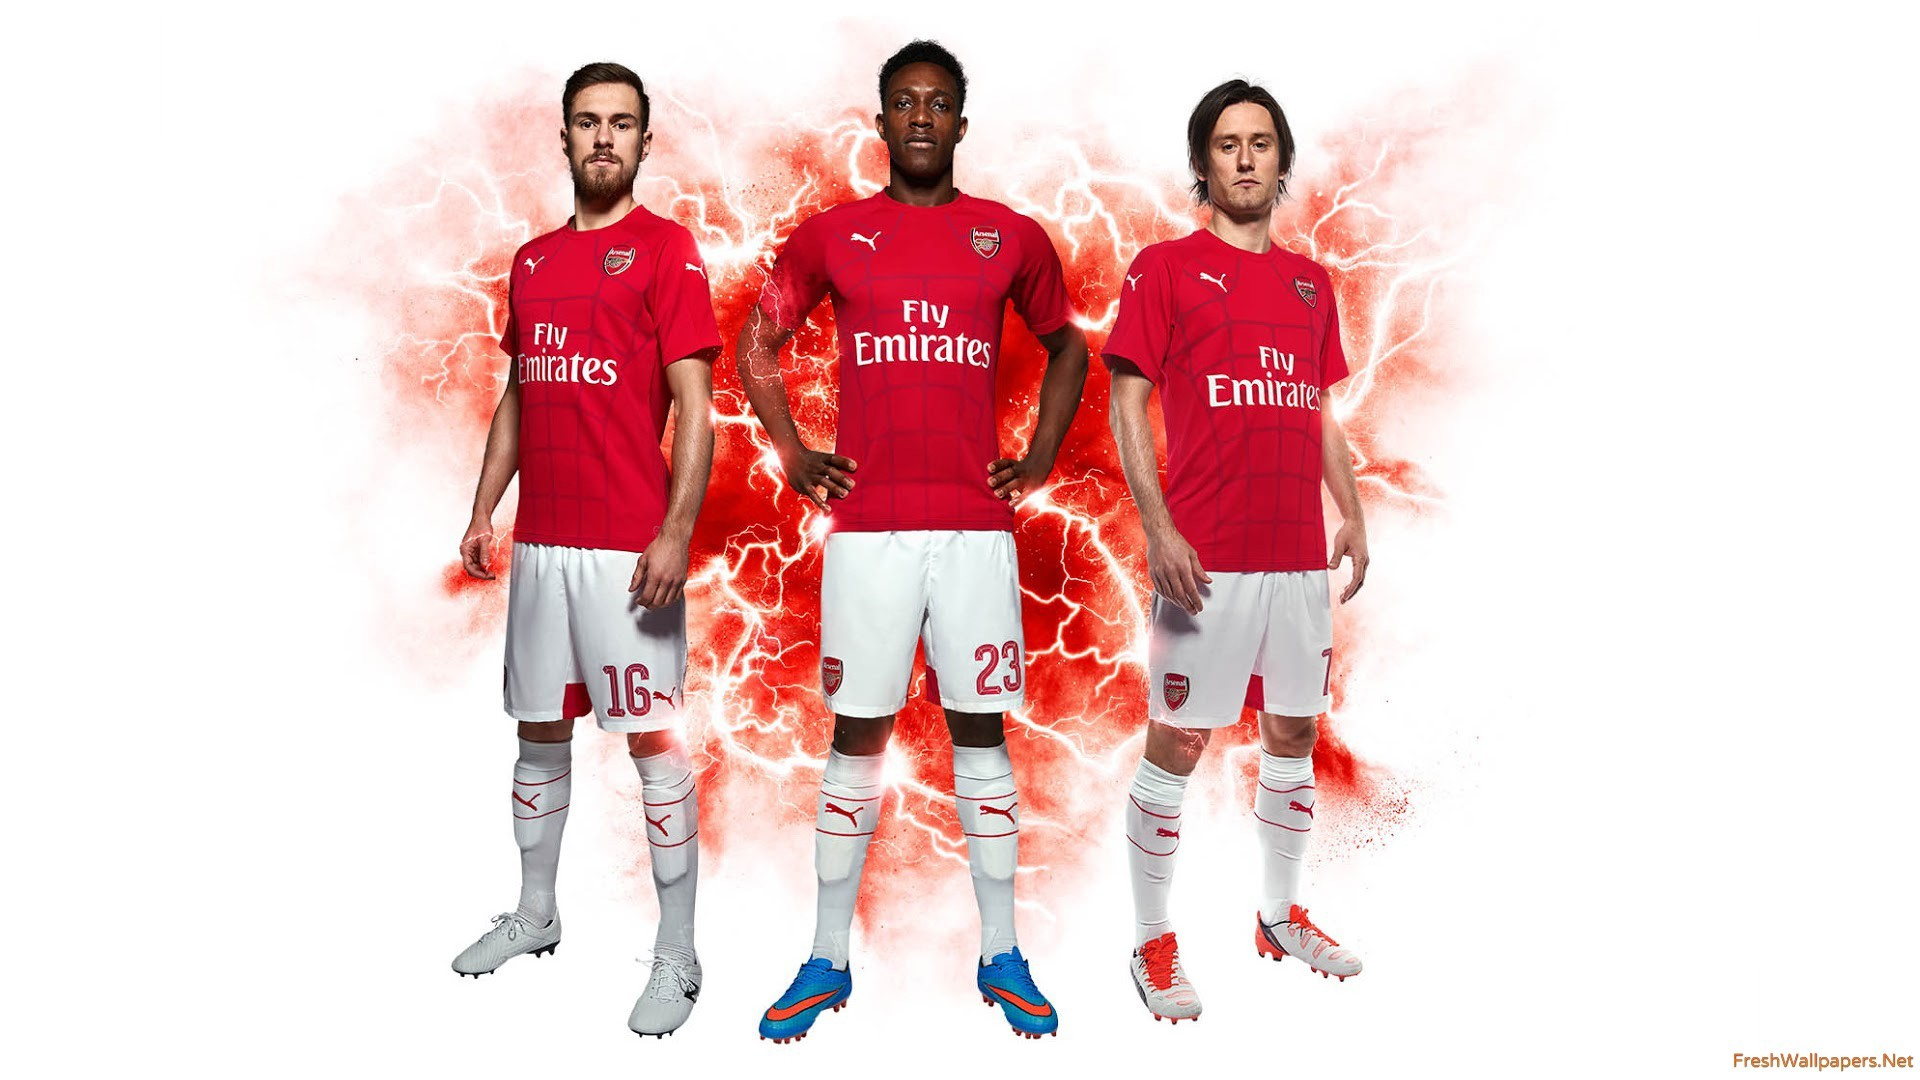 1920x1080 Arsenal FC 2015-16 Pre-Match Puma Shirt wallpapers